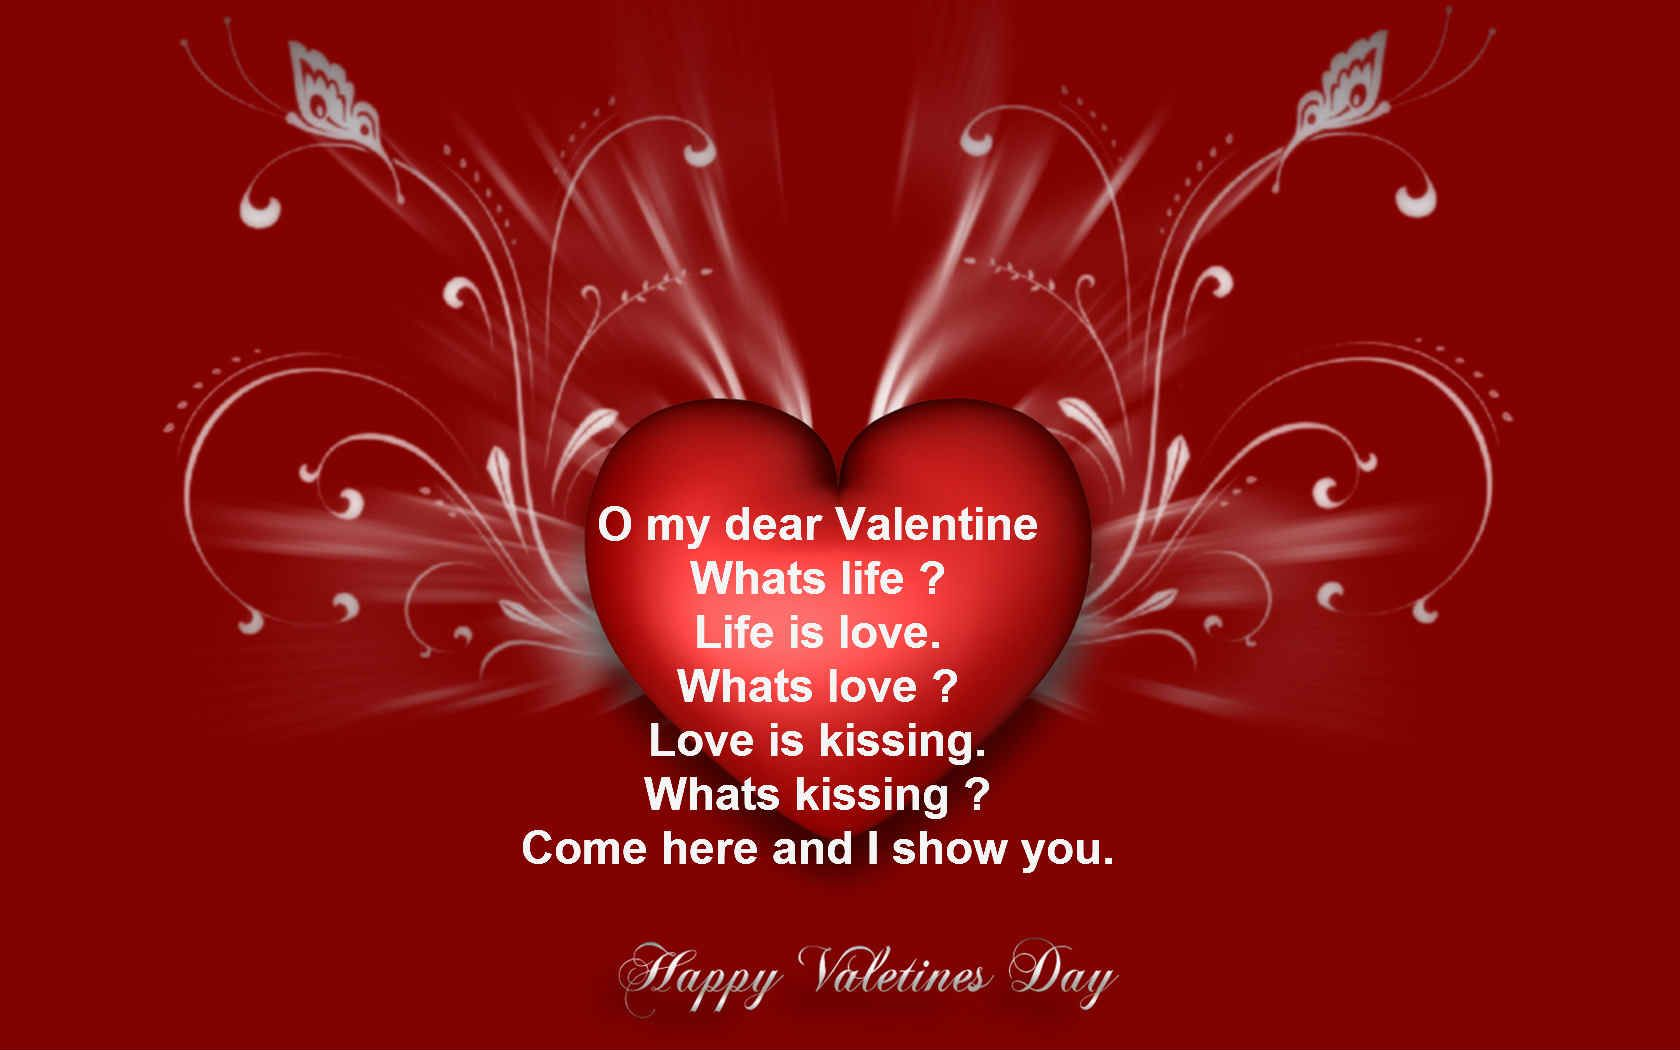 Happy Valentines Day Messages For Your Boyfriend Love Pinterest